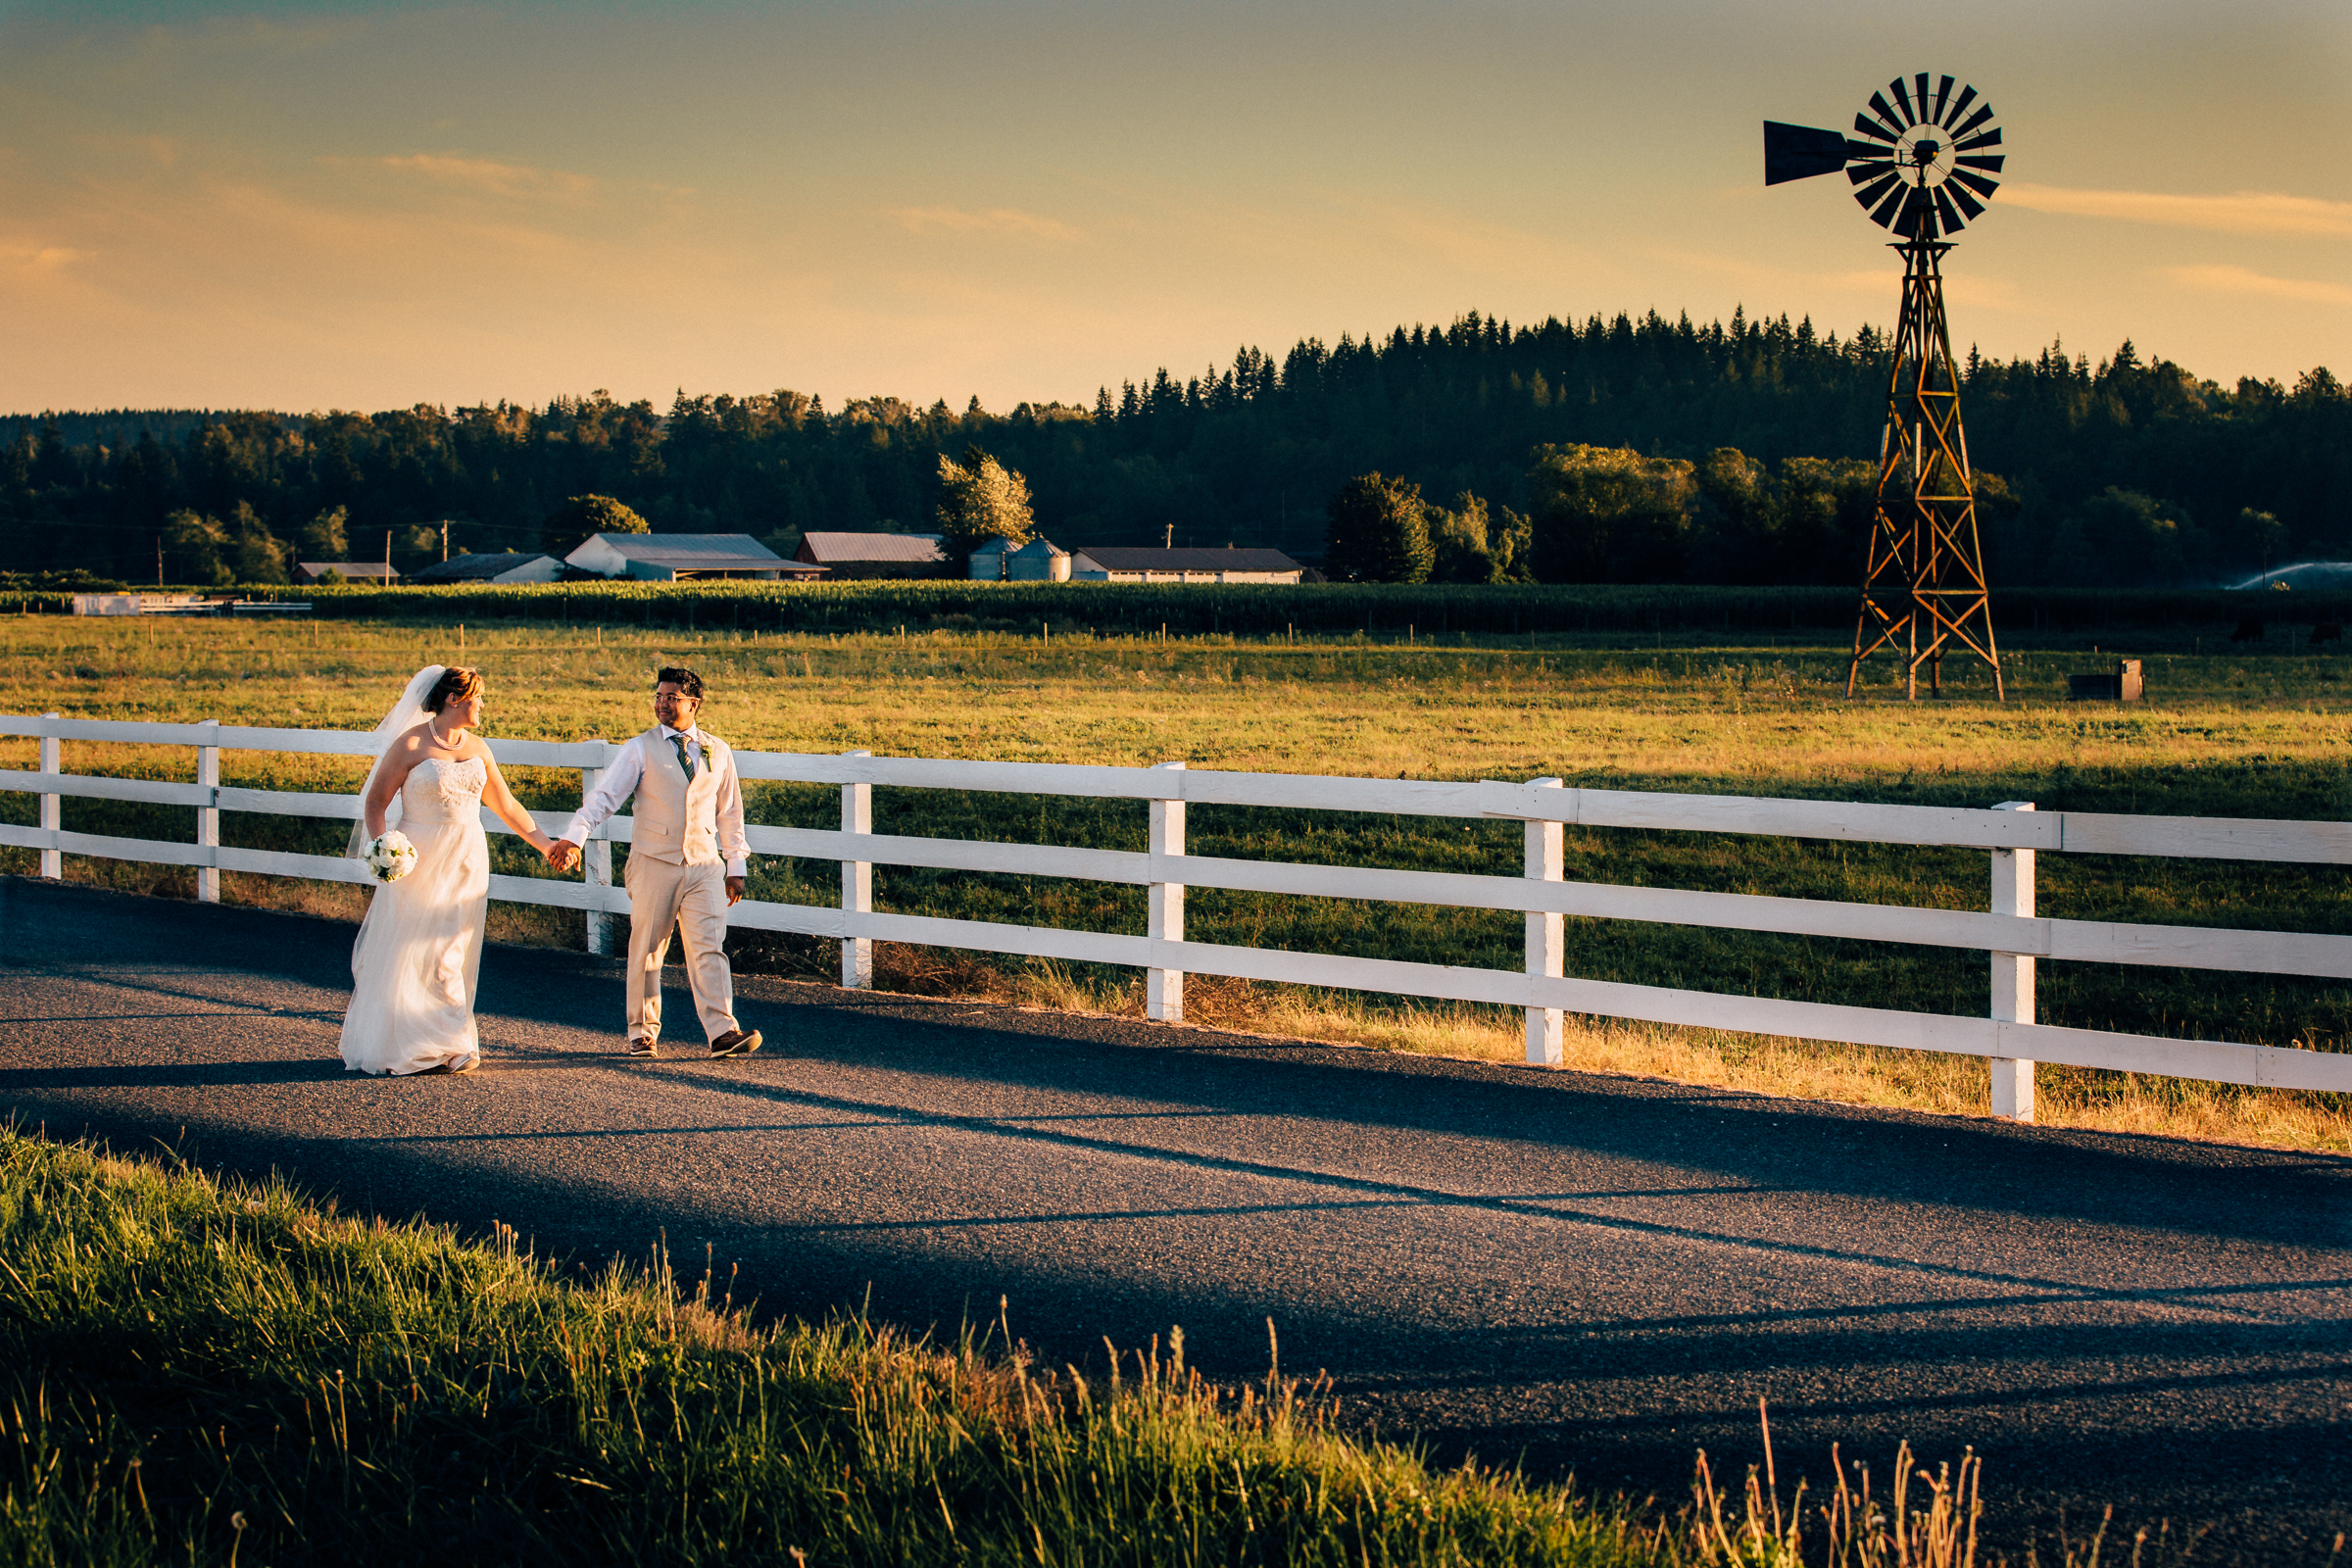 Arlington Washington wedding, windmill and Stilly Brook Farm at sunset